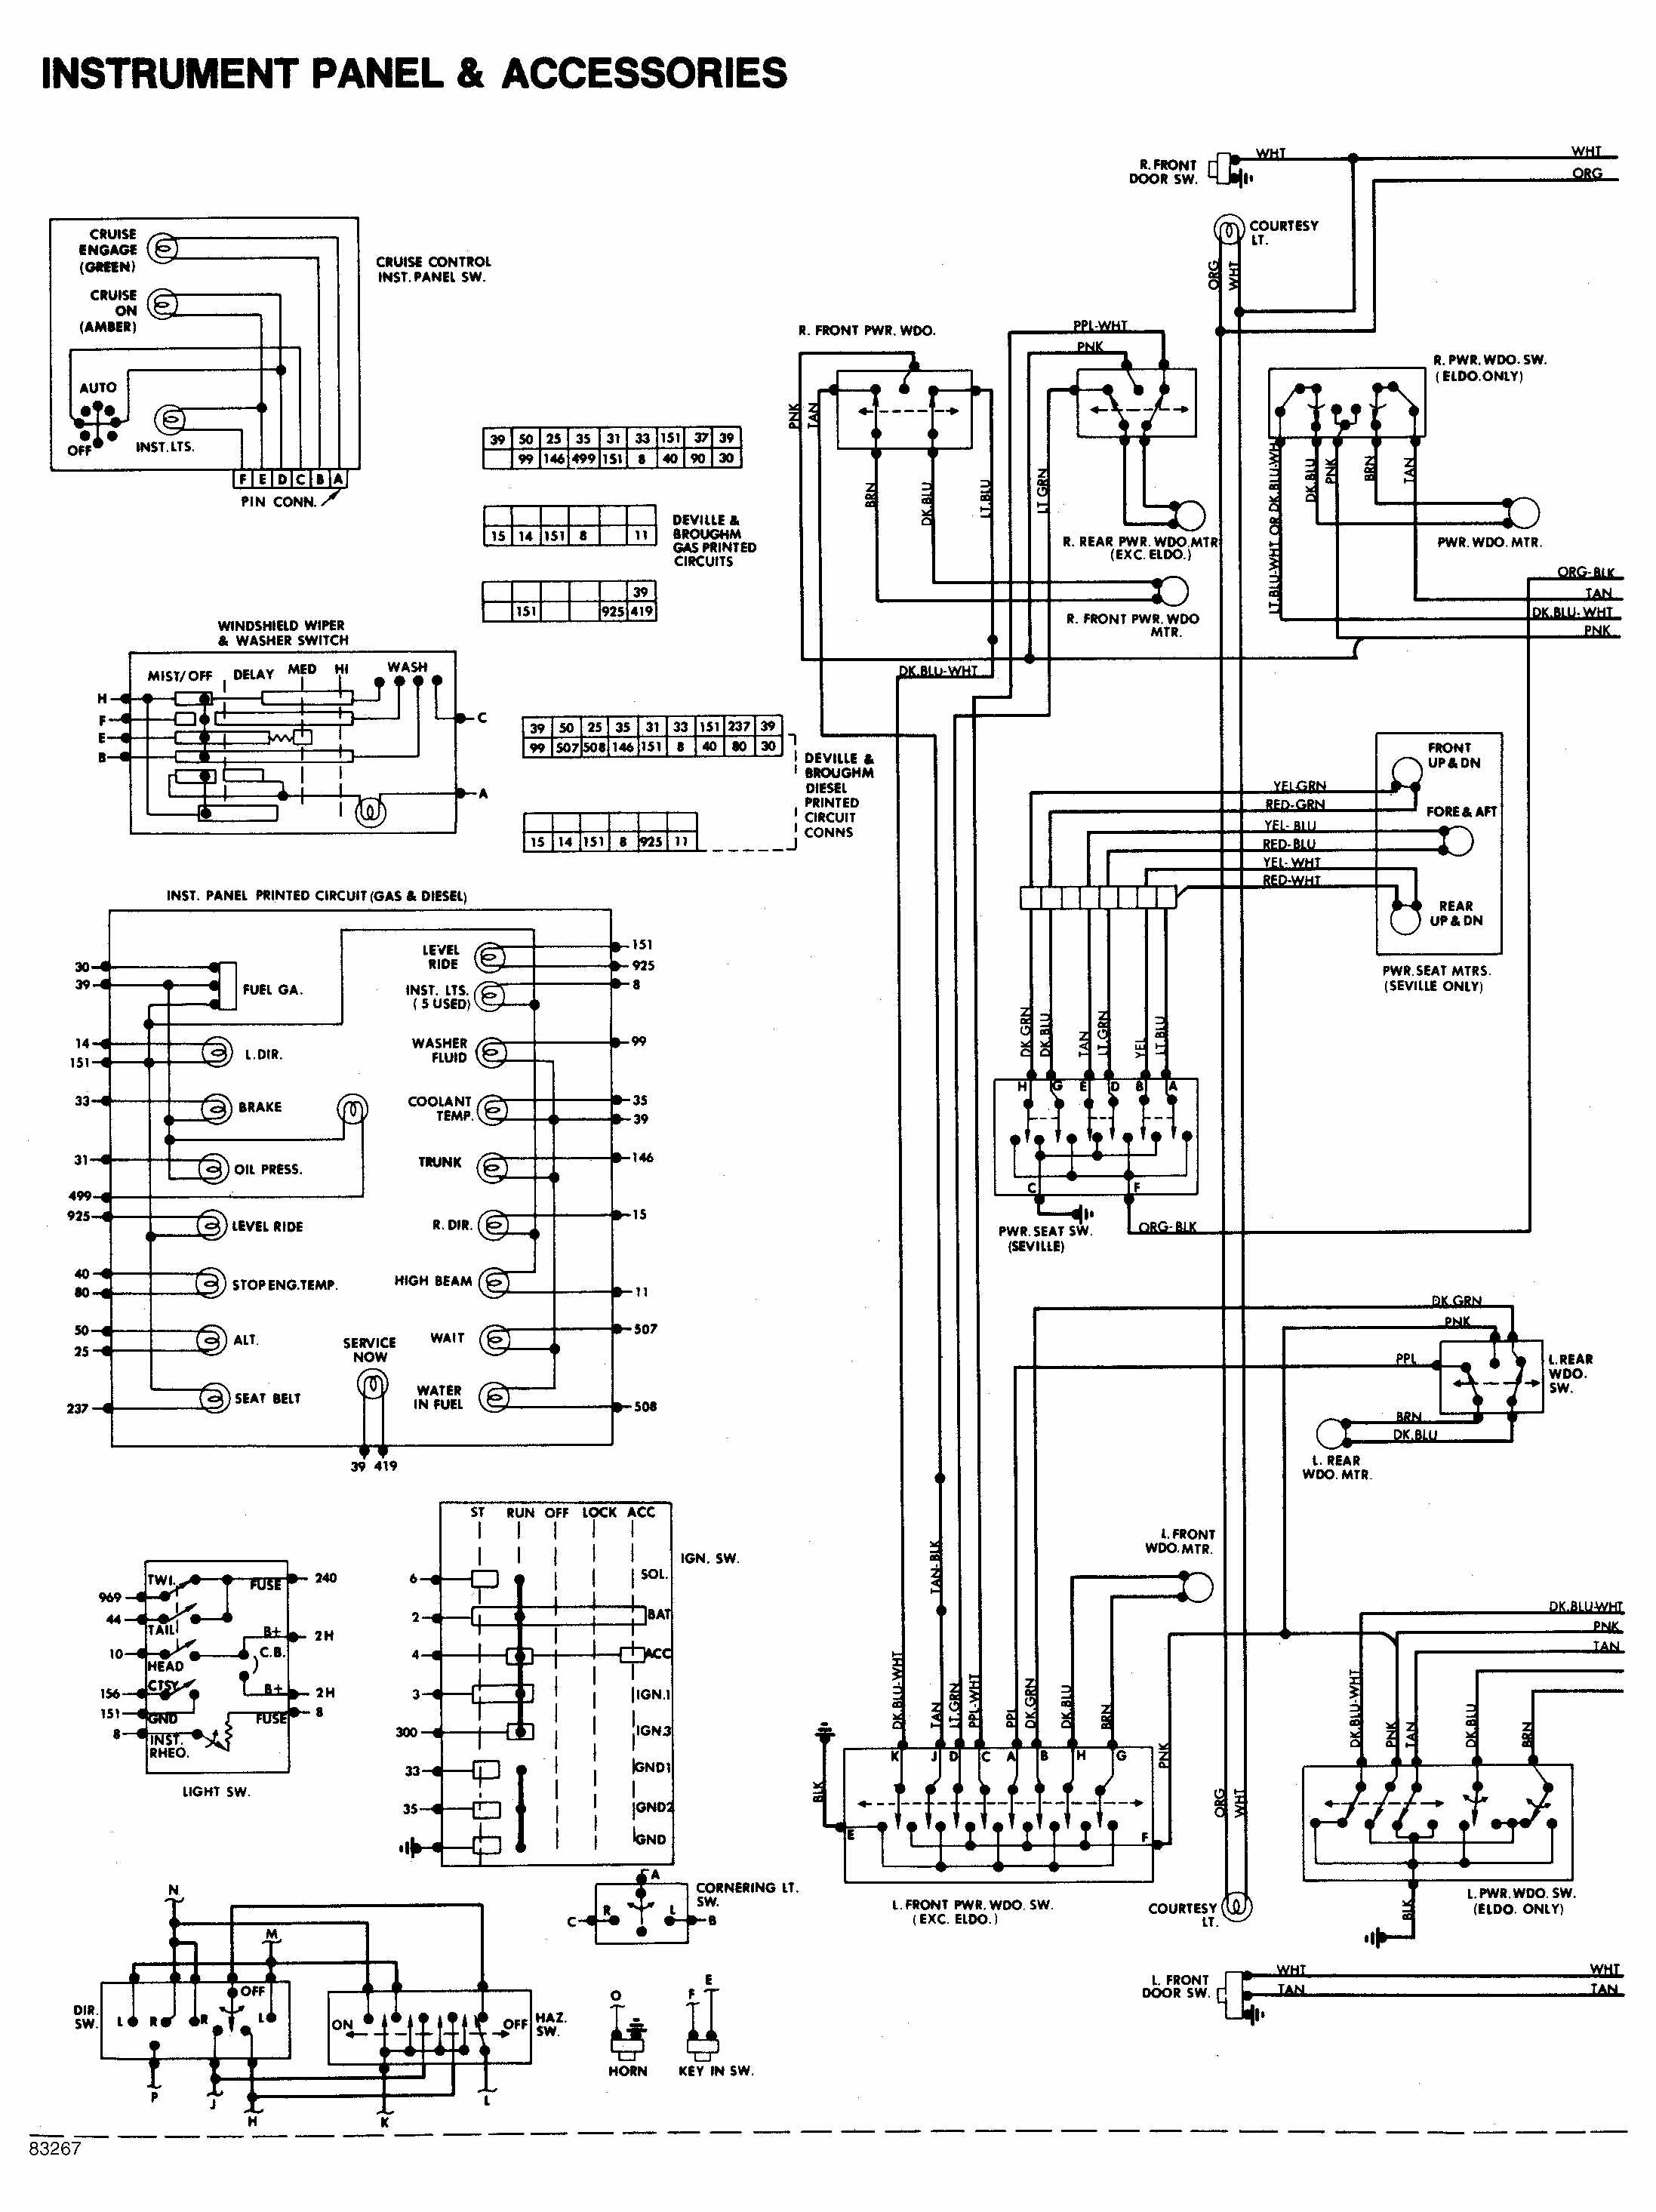 instrument panel and accessories wiring diagram of 1984 cadillac deville 1969 mustang instrument panel diagram wiring schematic on 1969 1969 mustang wiring diagram at bayanpartner.co